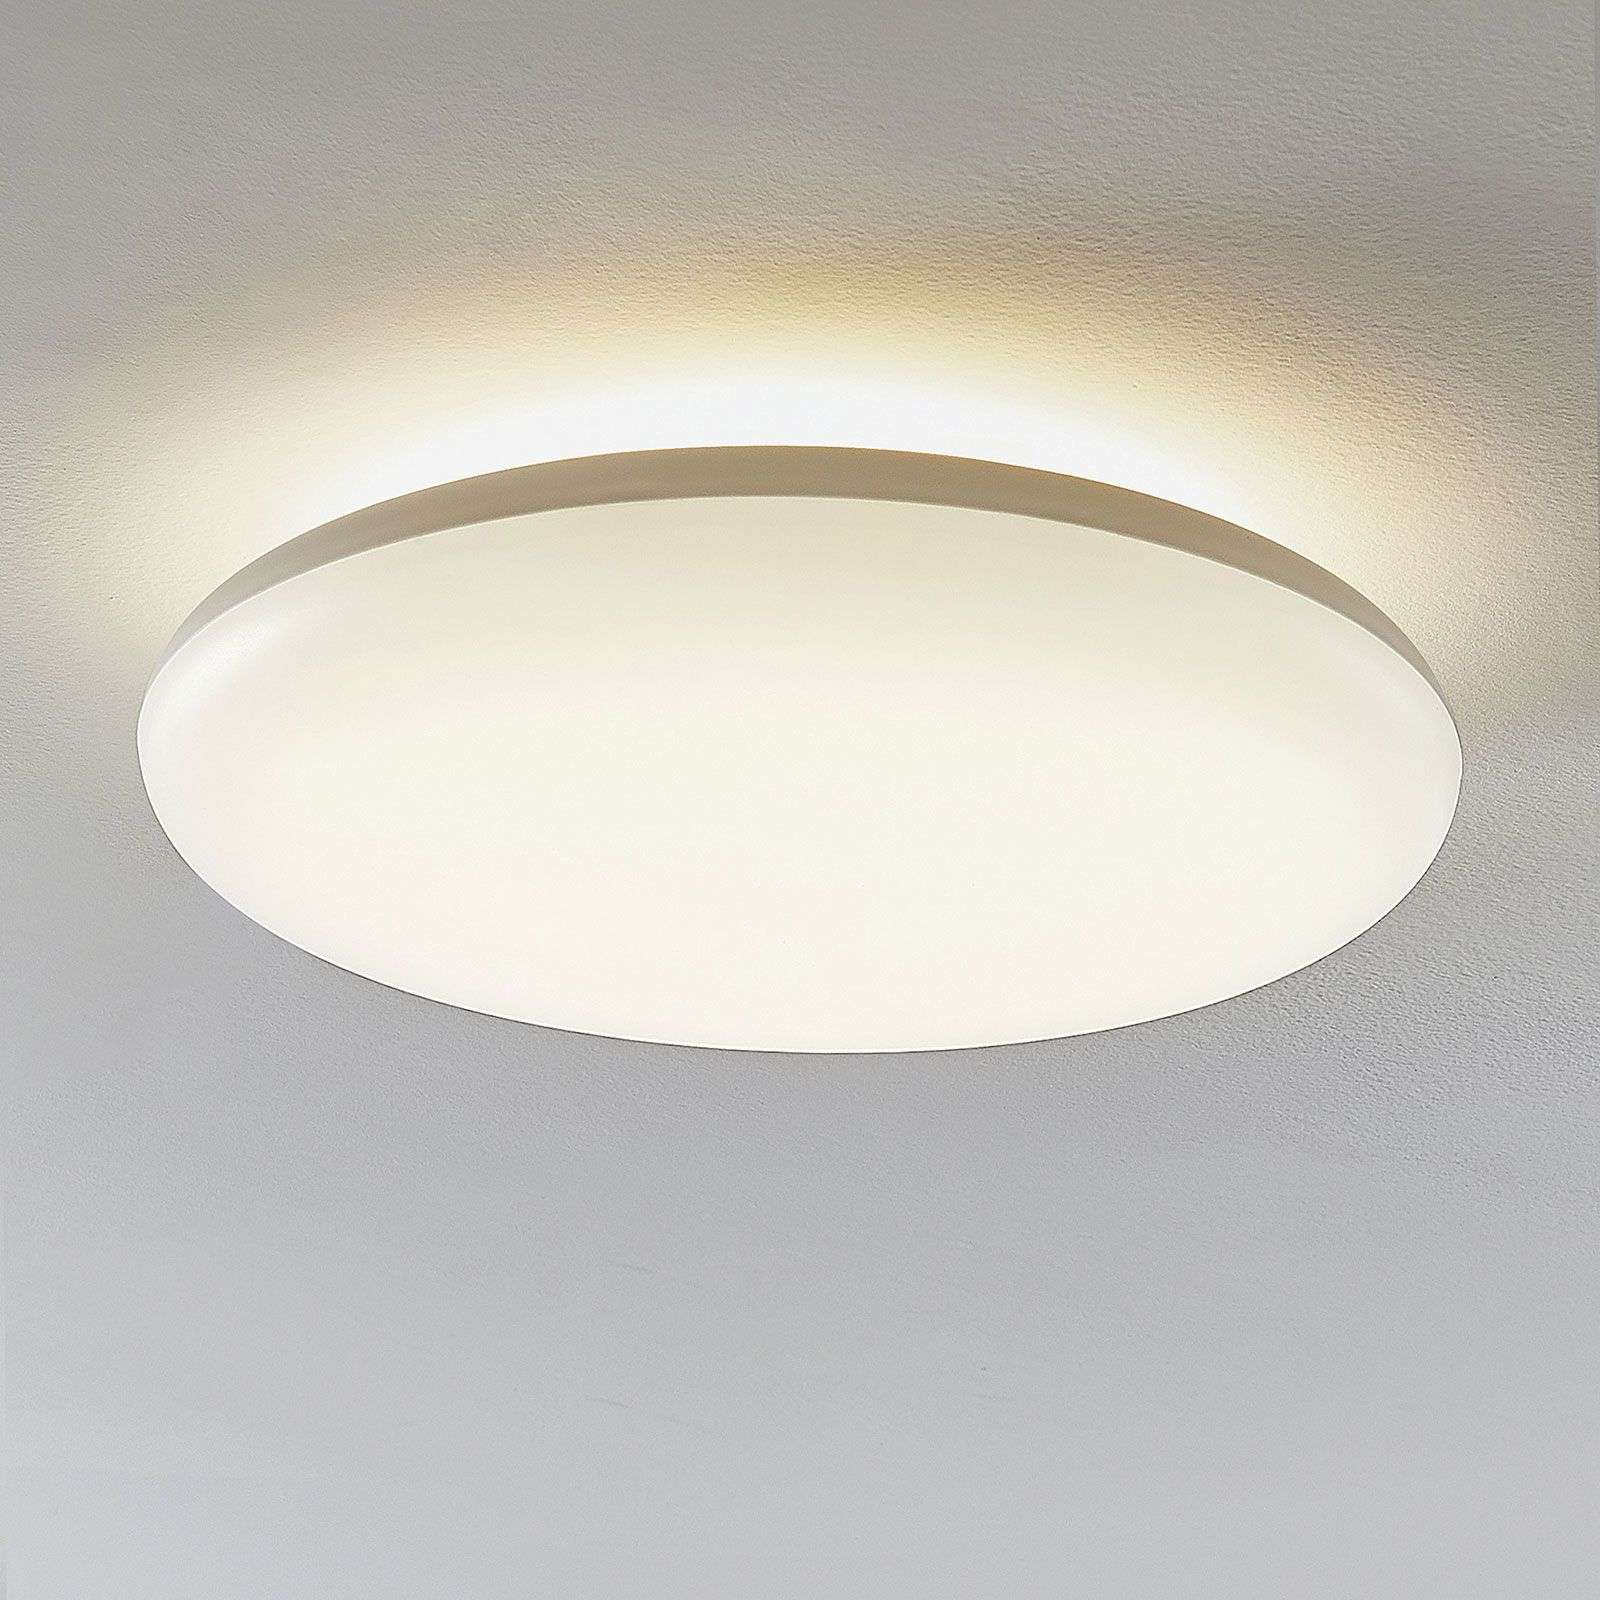 Plafonnier LED Kirian, rond, 4 000 K, dimmable